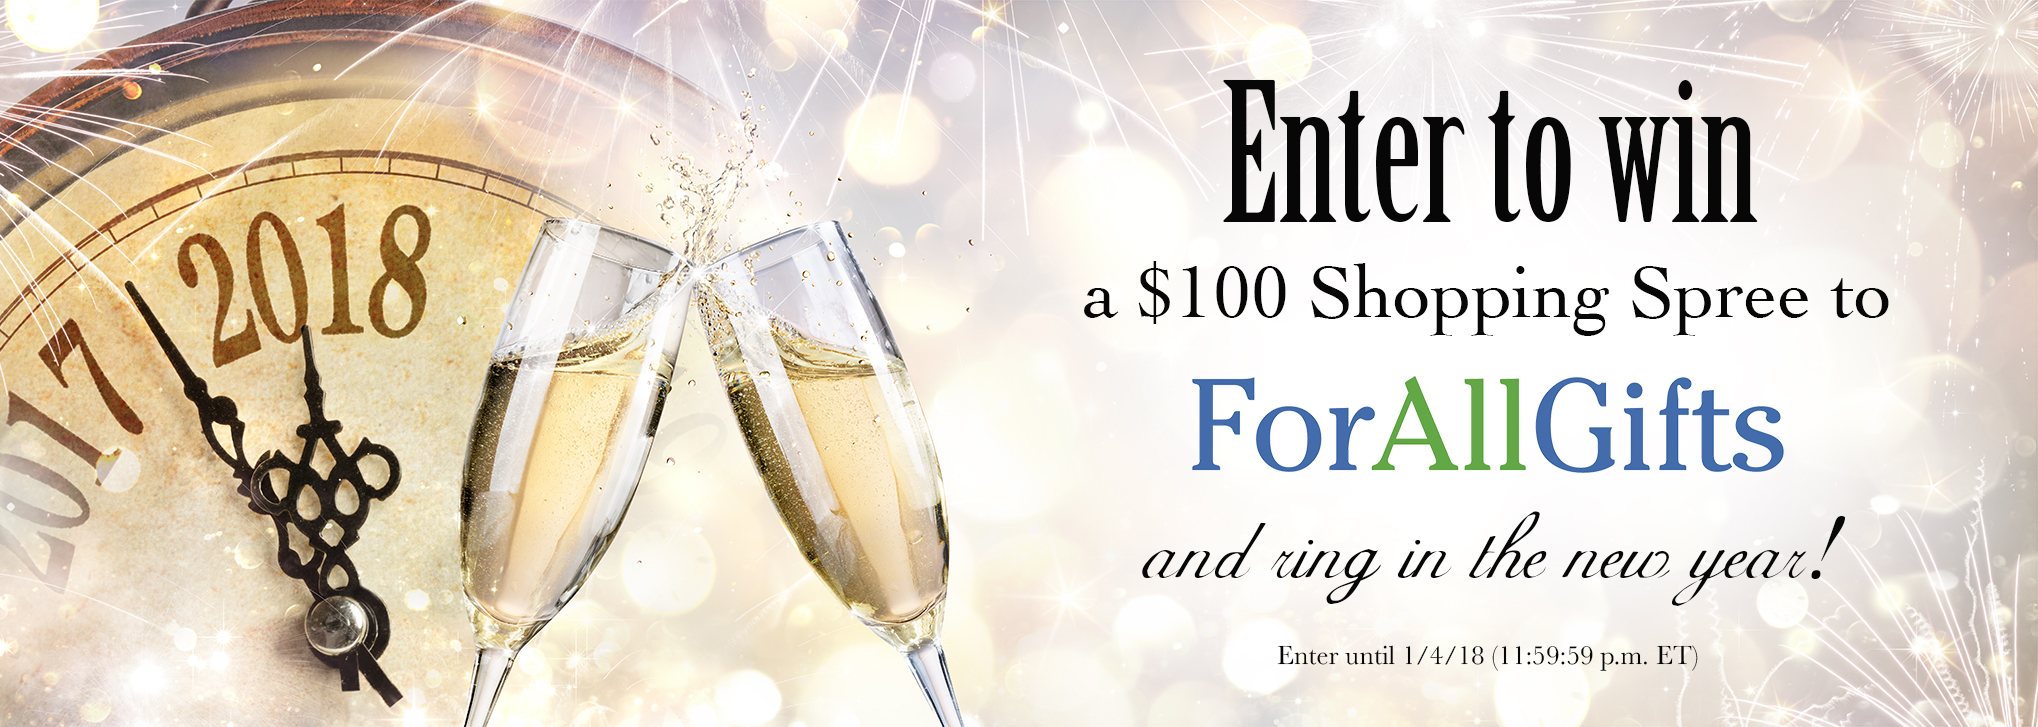 Enter to win a $100 Shopping Spree at ForAllGifts!